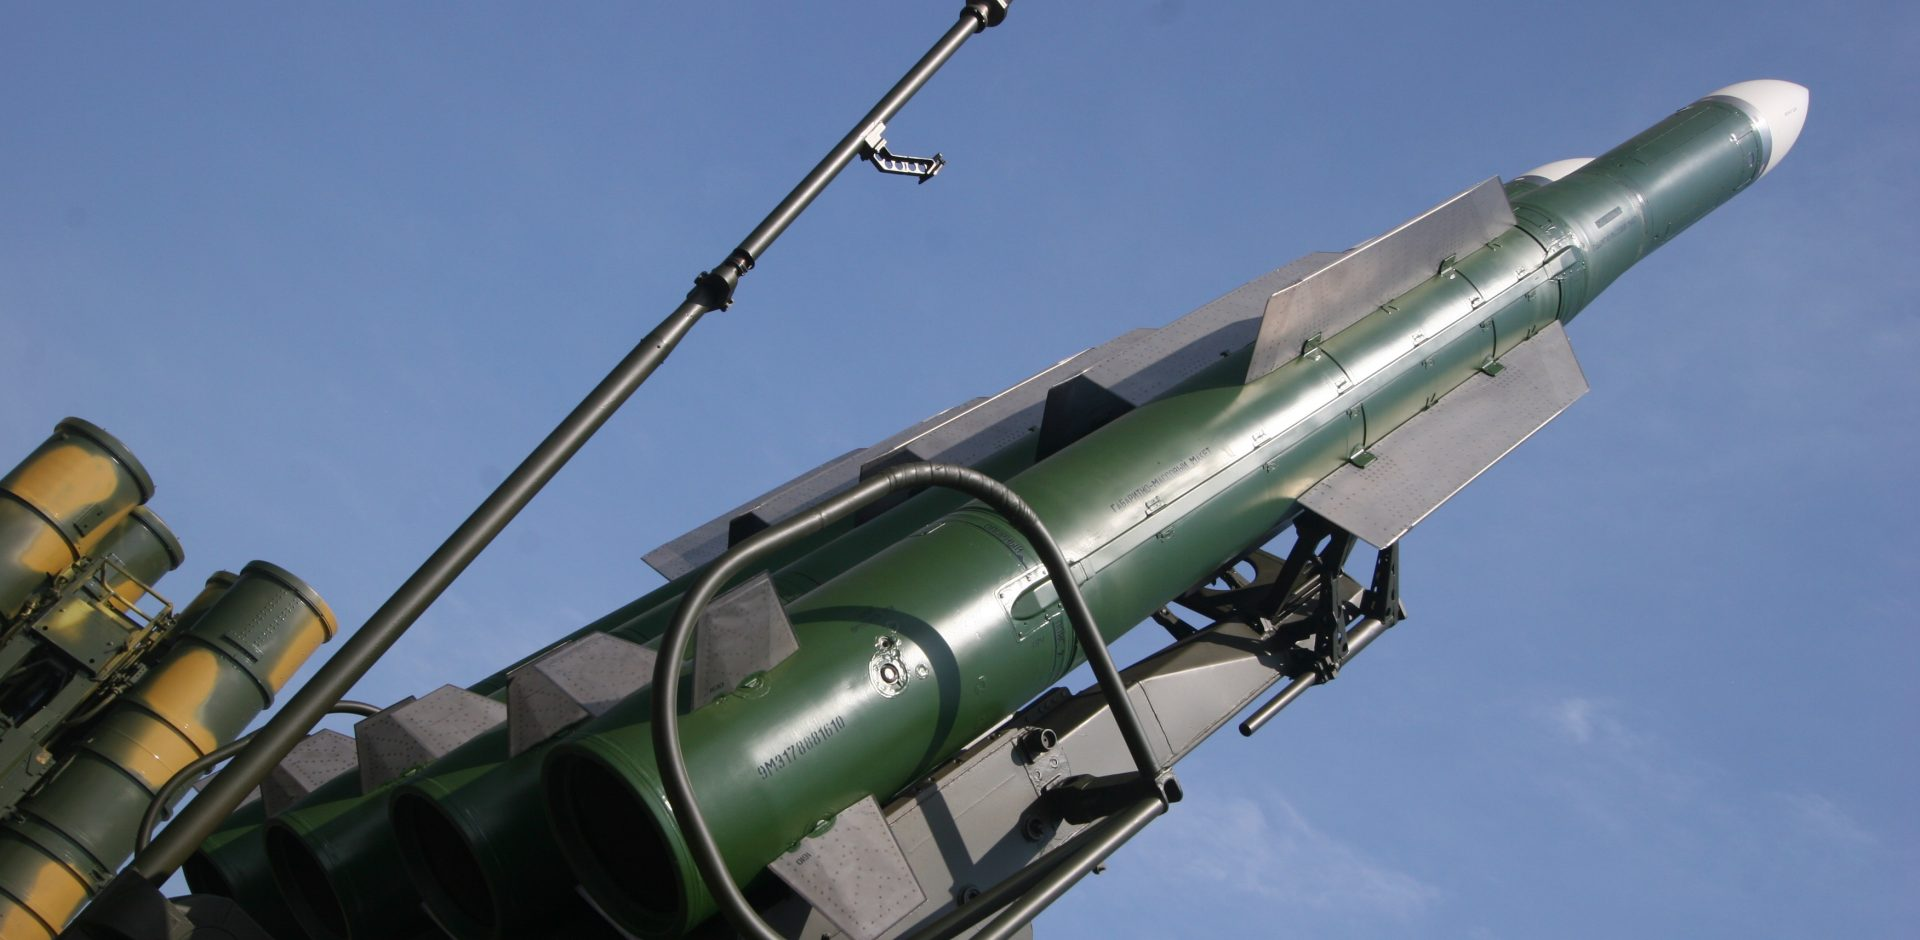 9M317 surface to air missile of Buk-M2E / Jurij Lapitskij (originally posted to Flickr as 9M317) [CC BY-SA 2.0 (http://creativecommons.org/licenses/by-sa/2.0)], via Wikimedia Commons